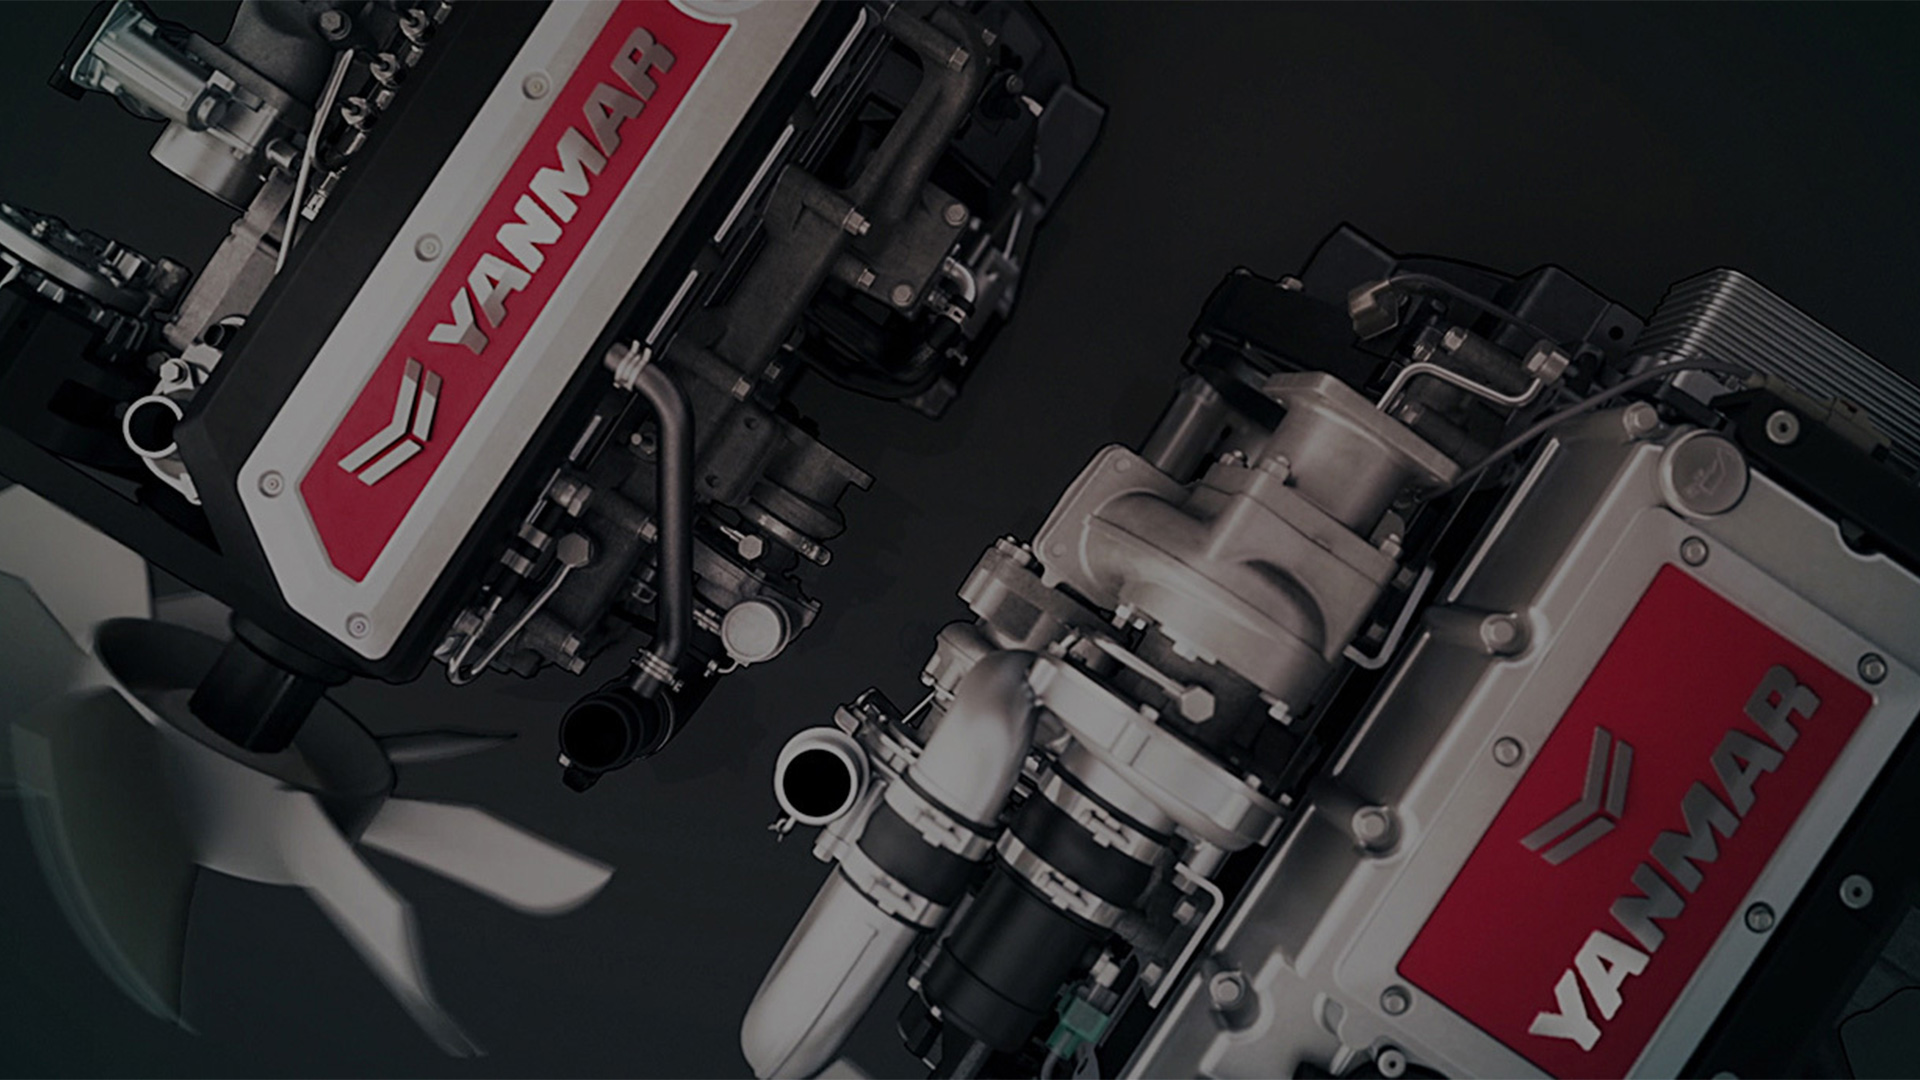 YANMAR engines from above